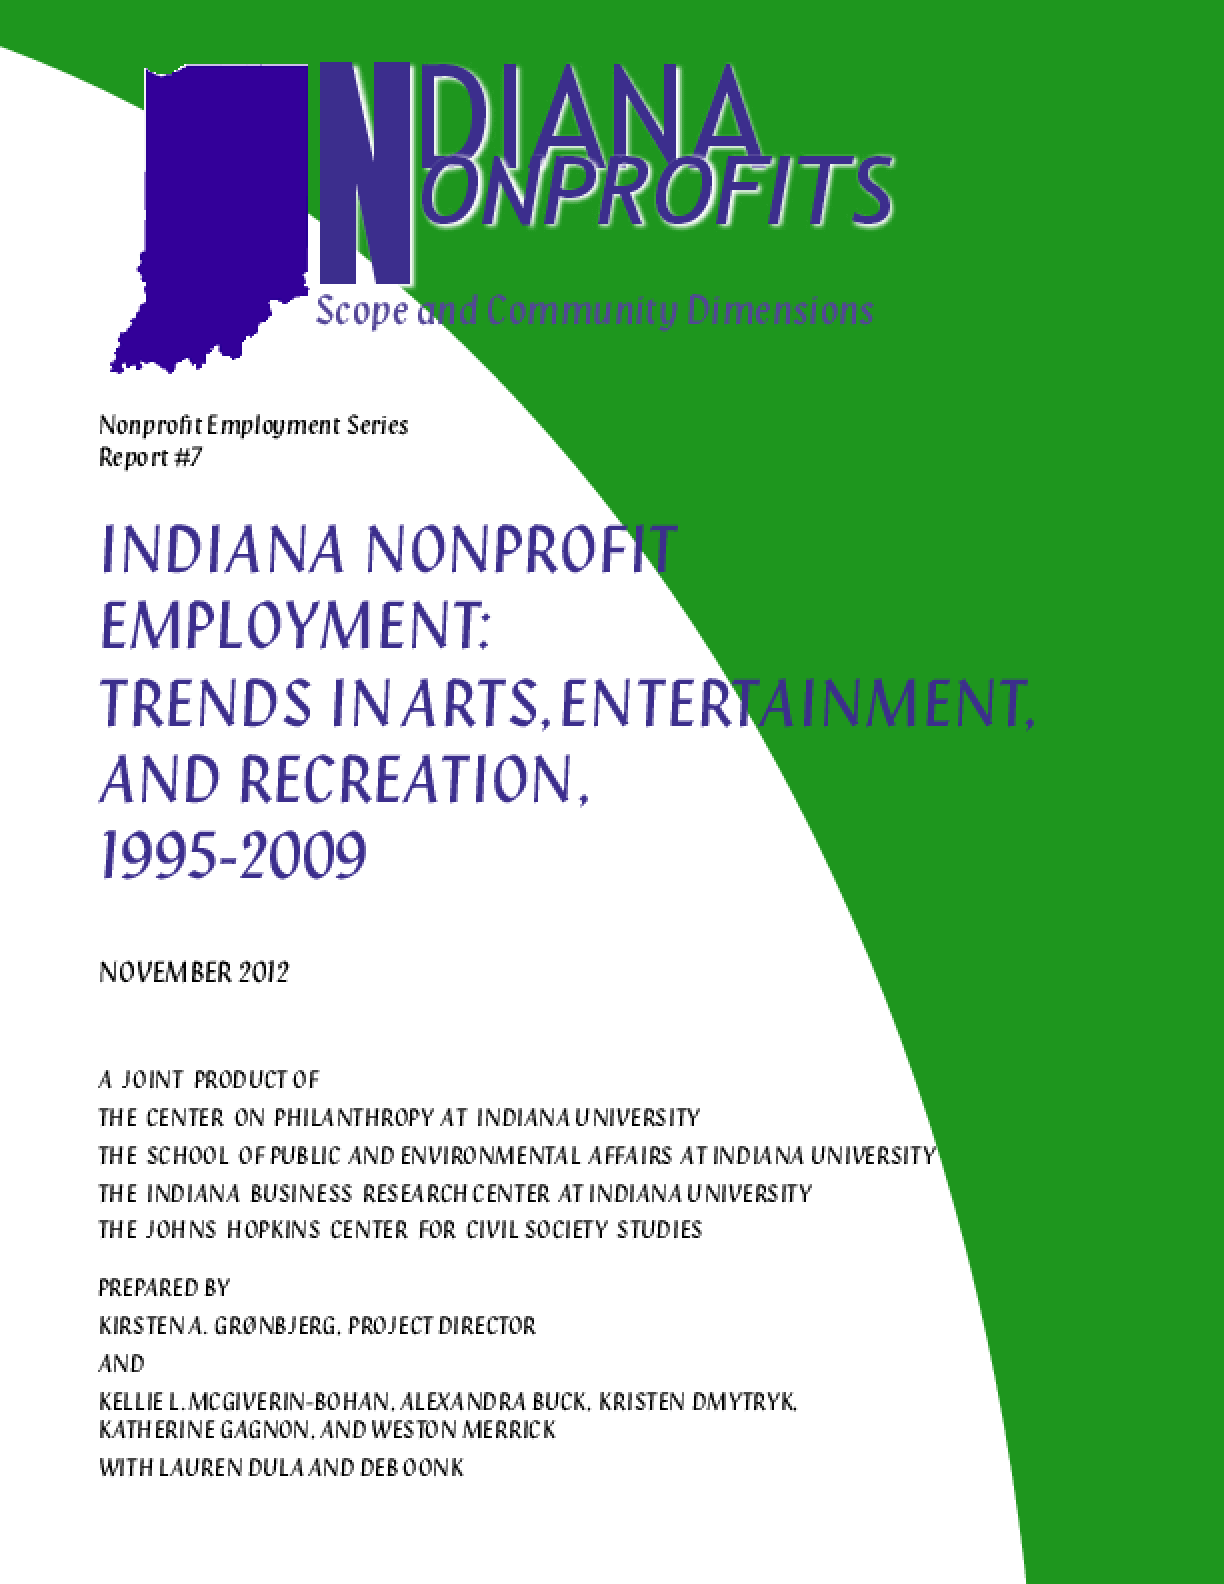 Indiana Nonprofit Employment: Historical Trends in Arts, Entertainment and Recreation, 1995-2009